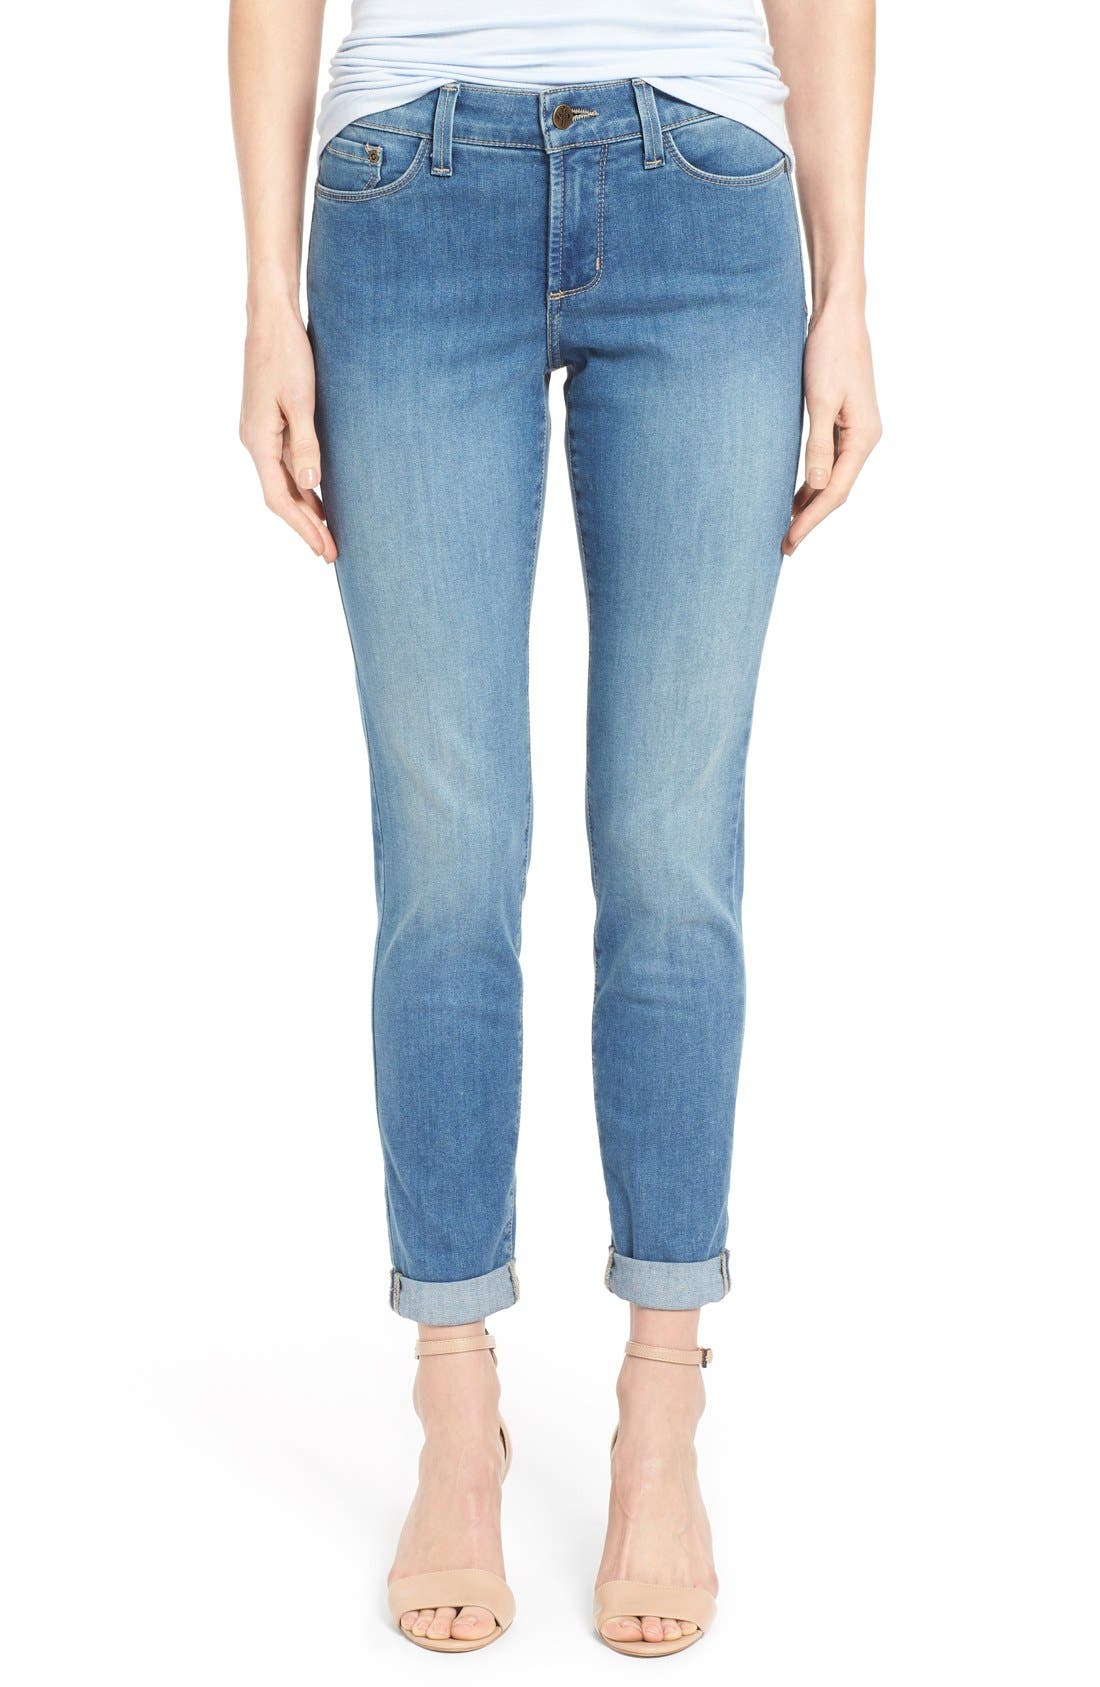 Alternate Image 1 Selected - NYDJ 'Anabelle' Stretch Skinny Boyfriend Jeans (Upper Falls) (Regular & Petite)